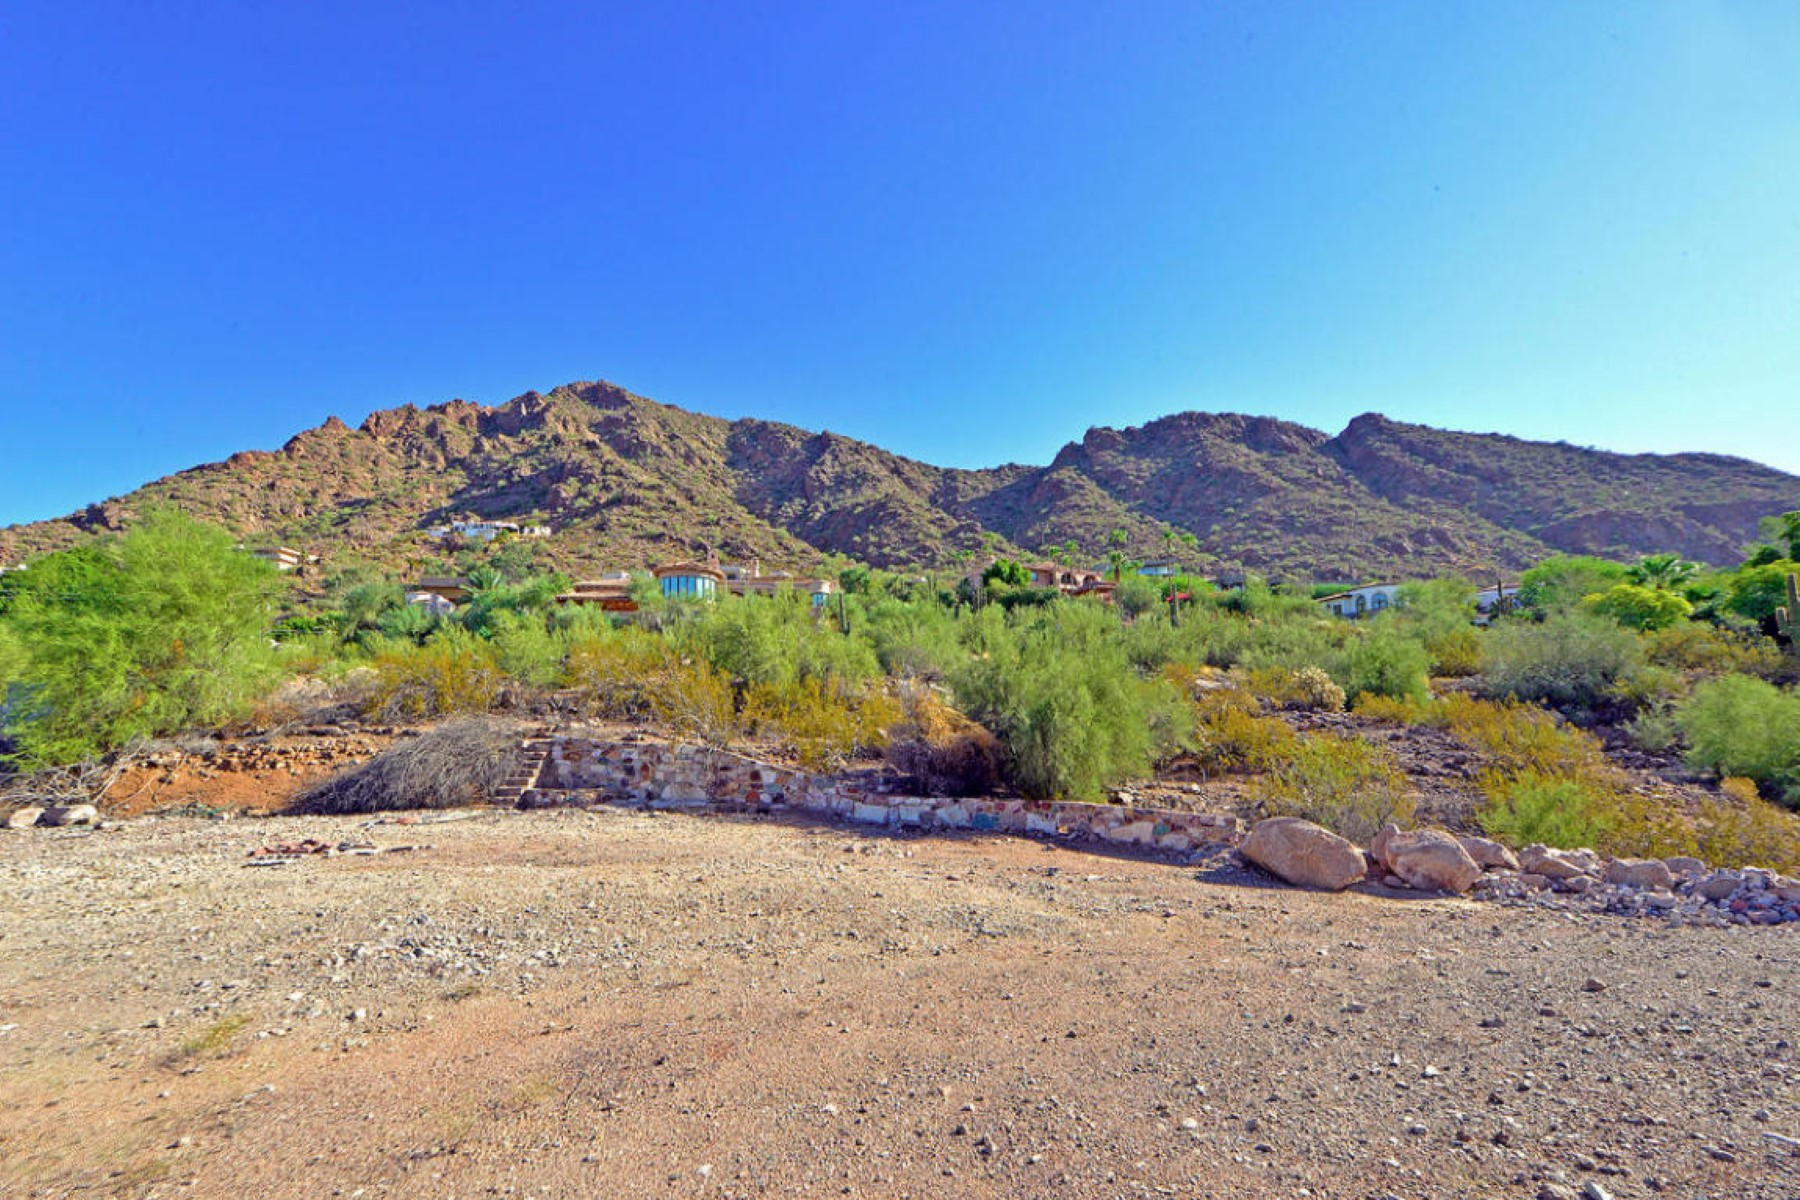 Property For Sale at Great lot on south slope of Camelback Mtn. with 360 degree views.